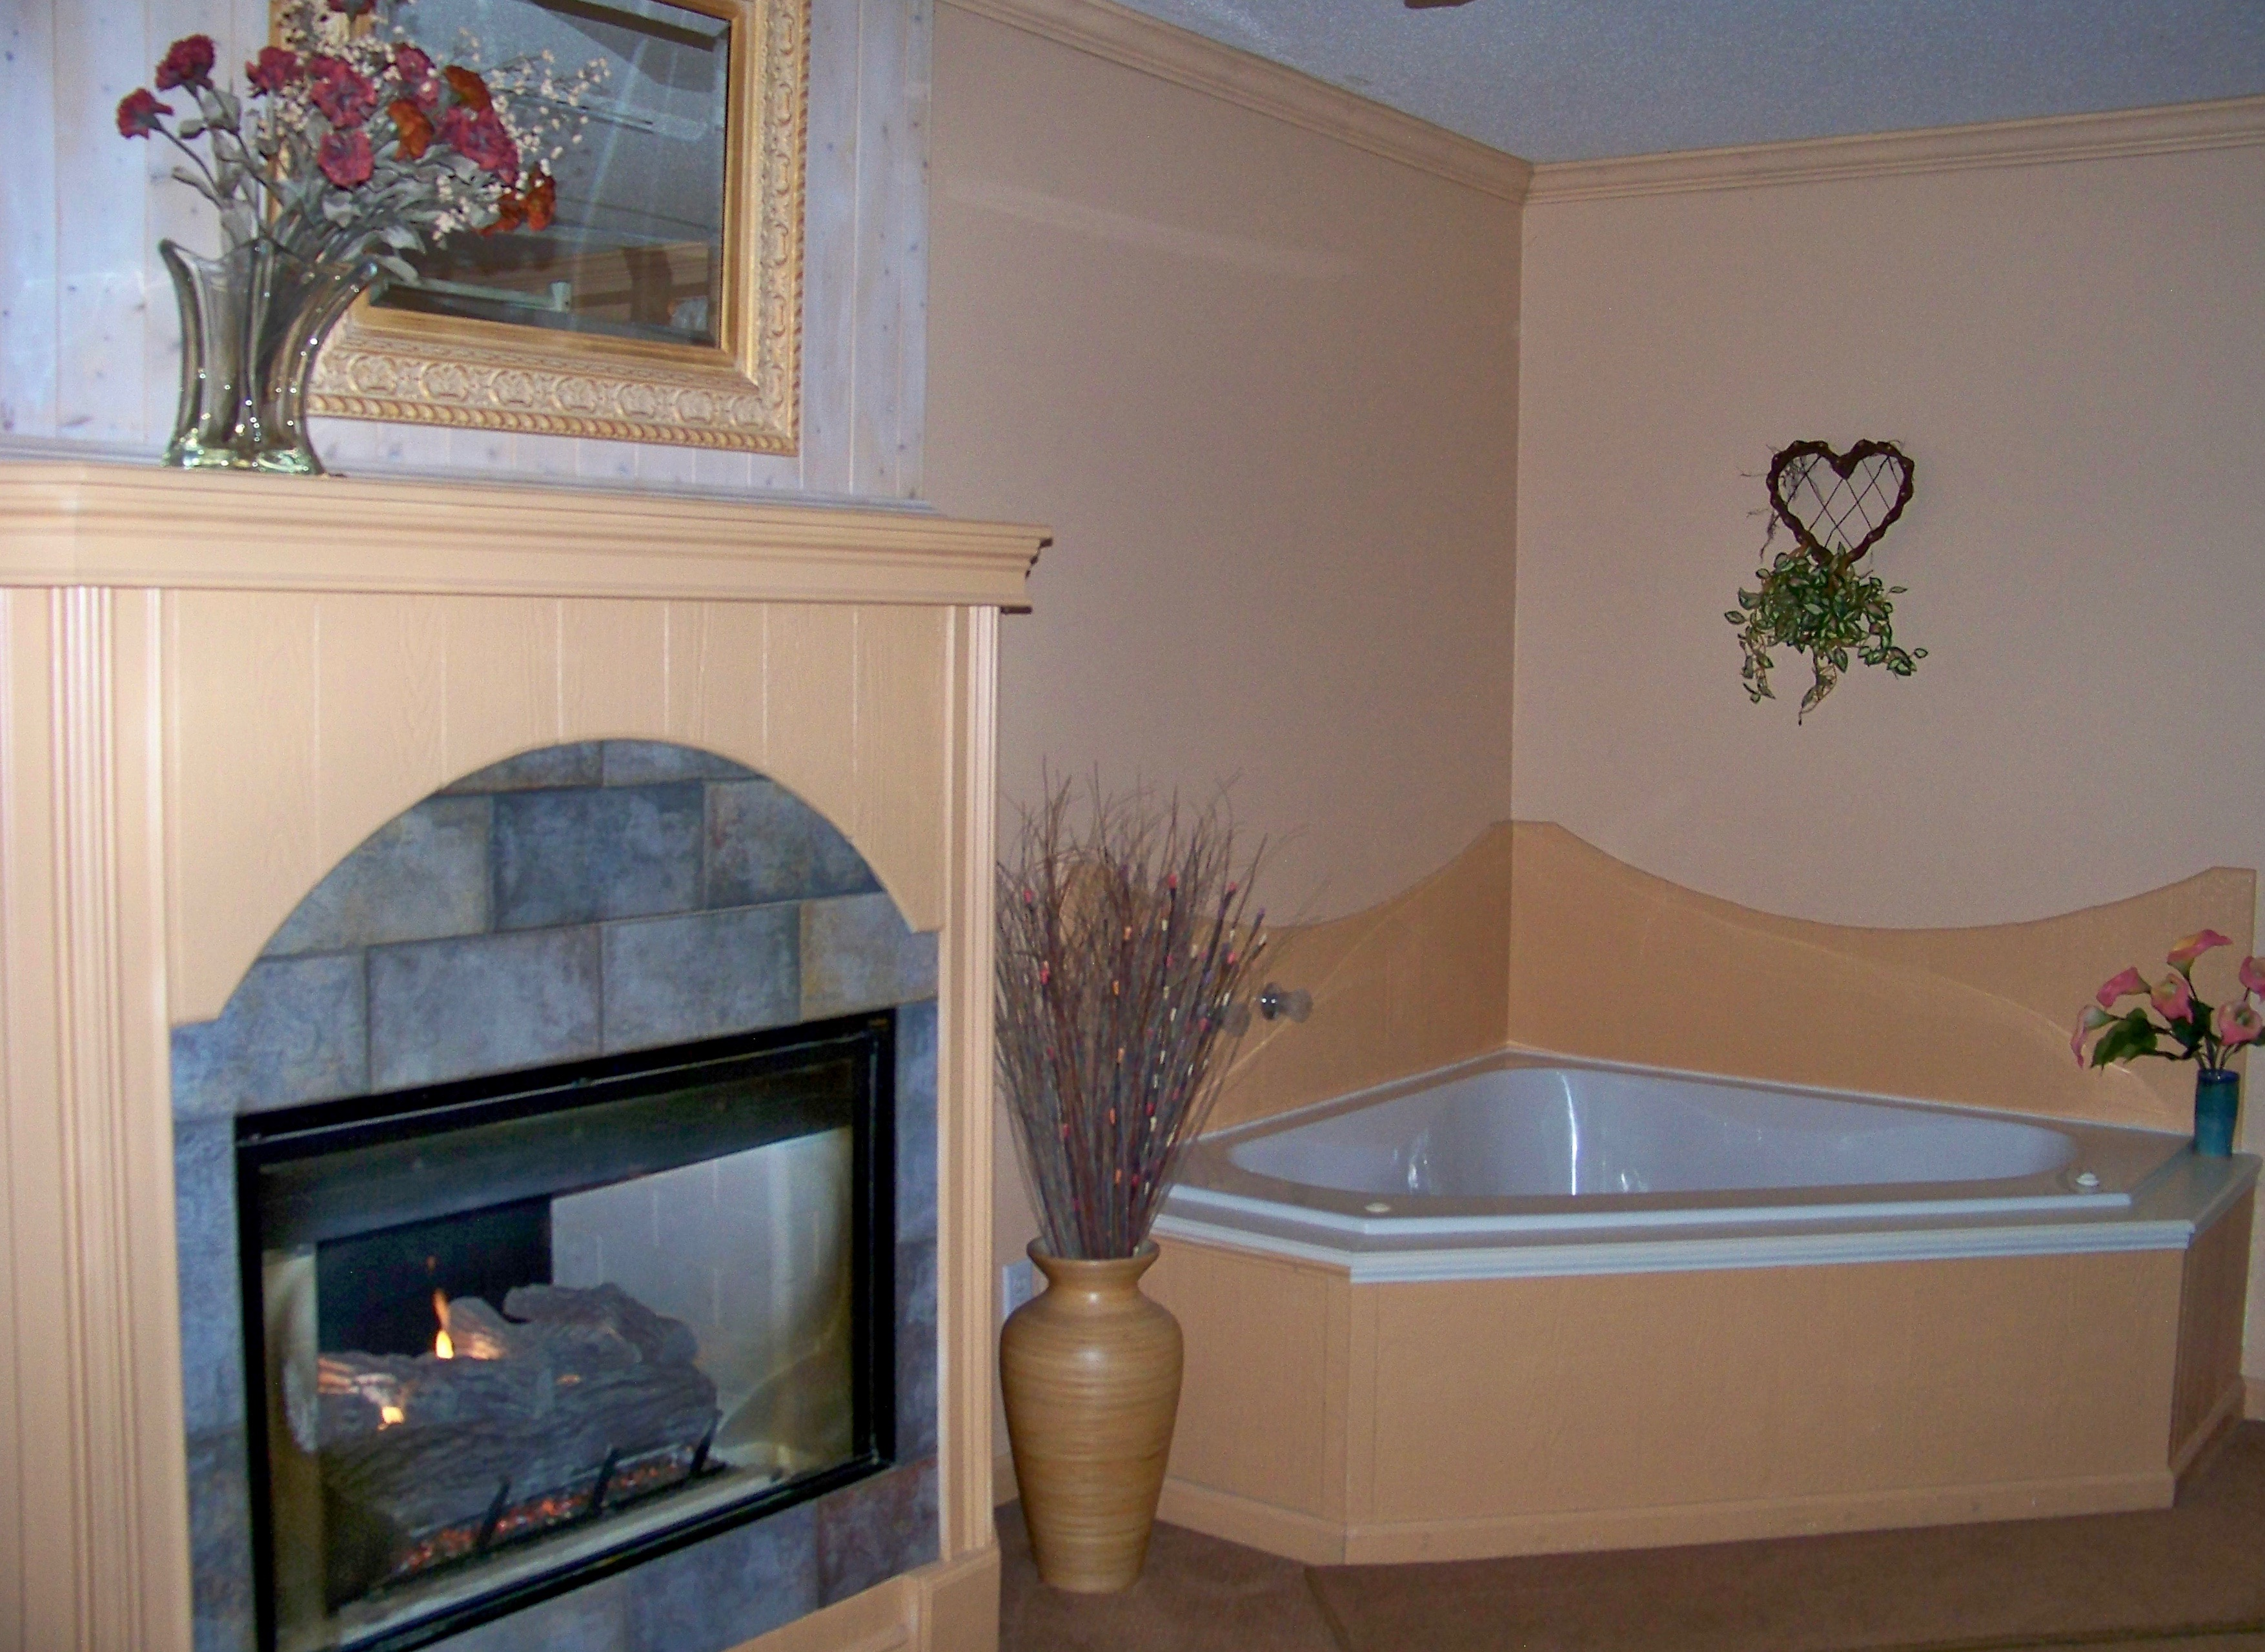 7 whirlpool tub and fireplace in bedroom